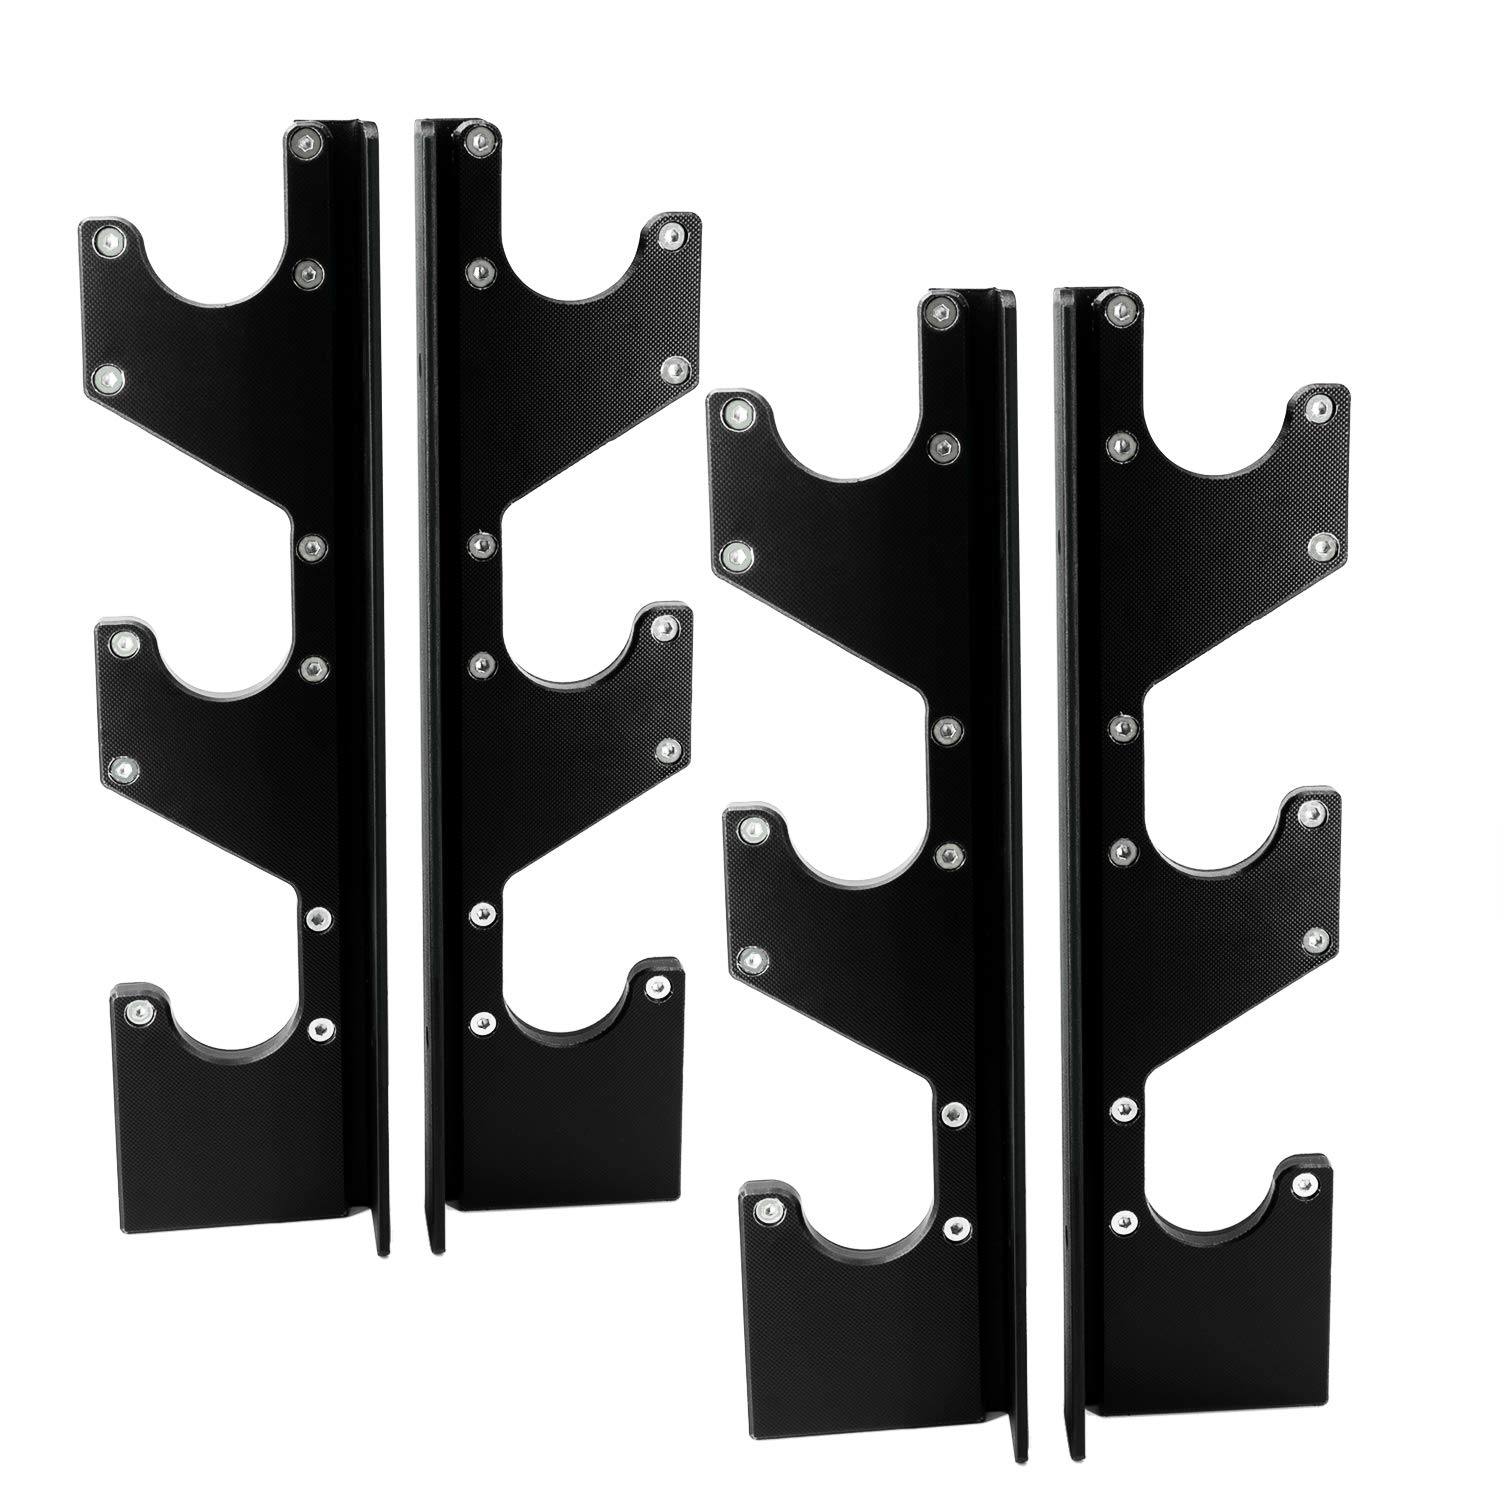 RIGERS Horizontal Wall Mounted Barbell Holder 3 Bar Storage Wall Rack for Standard /& Olympic Barbells